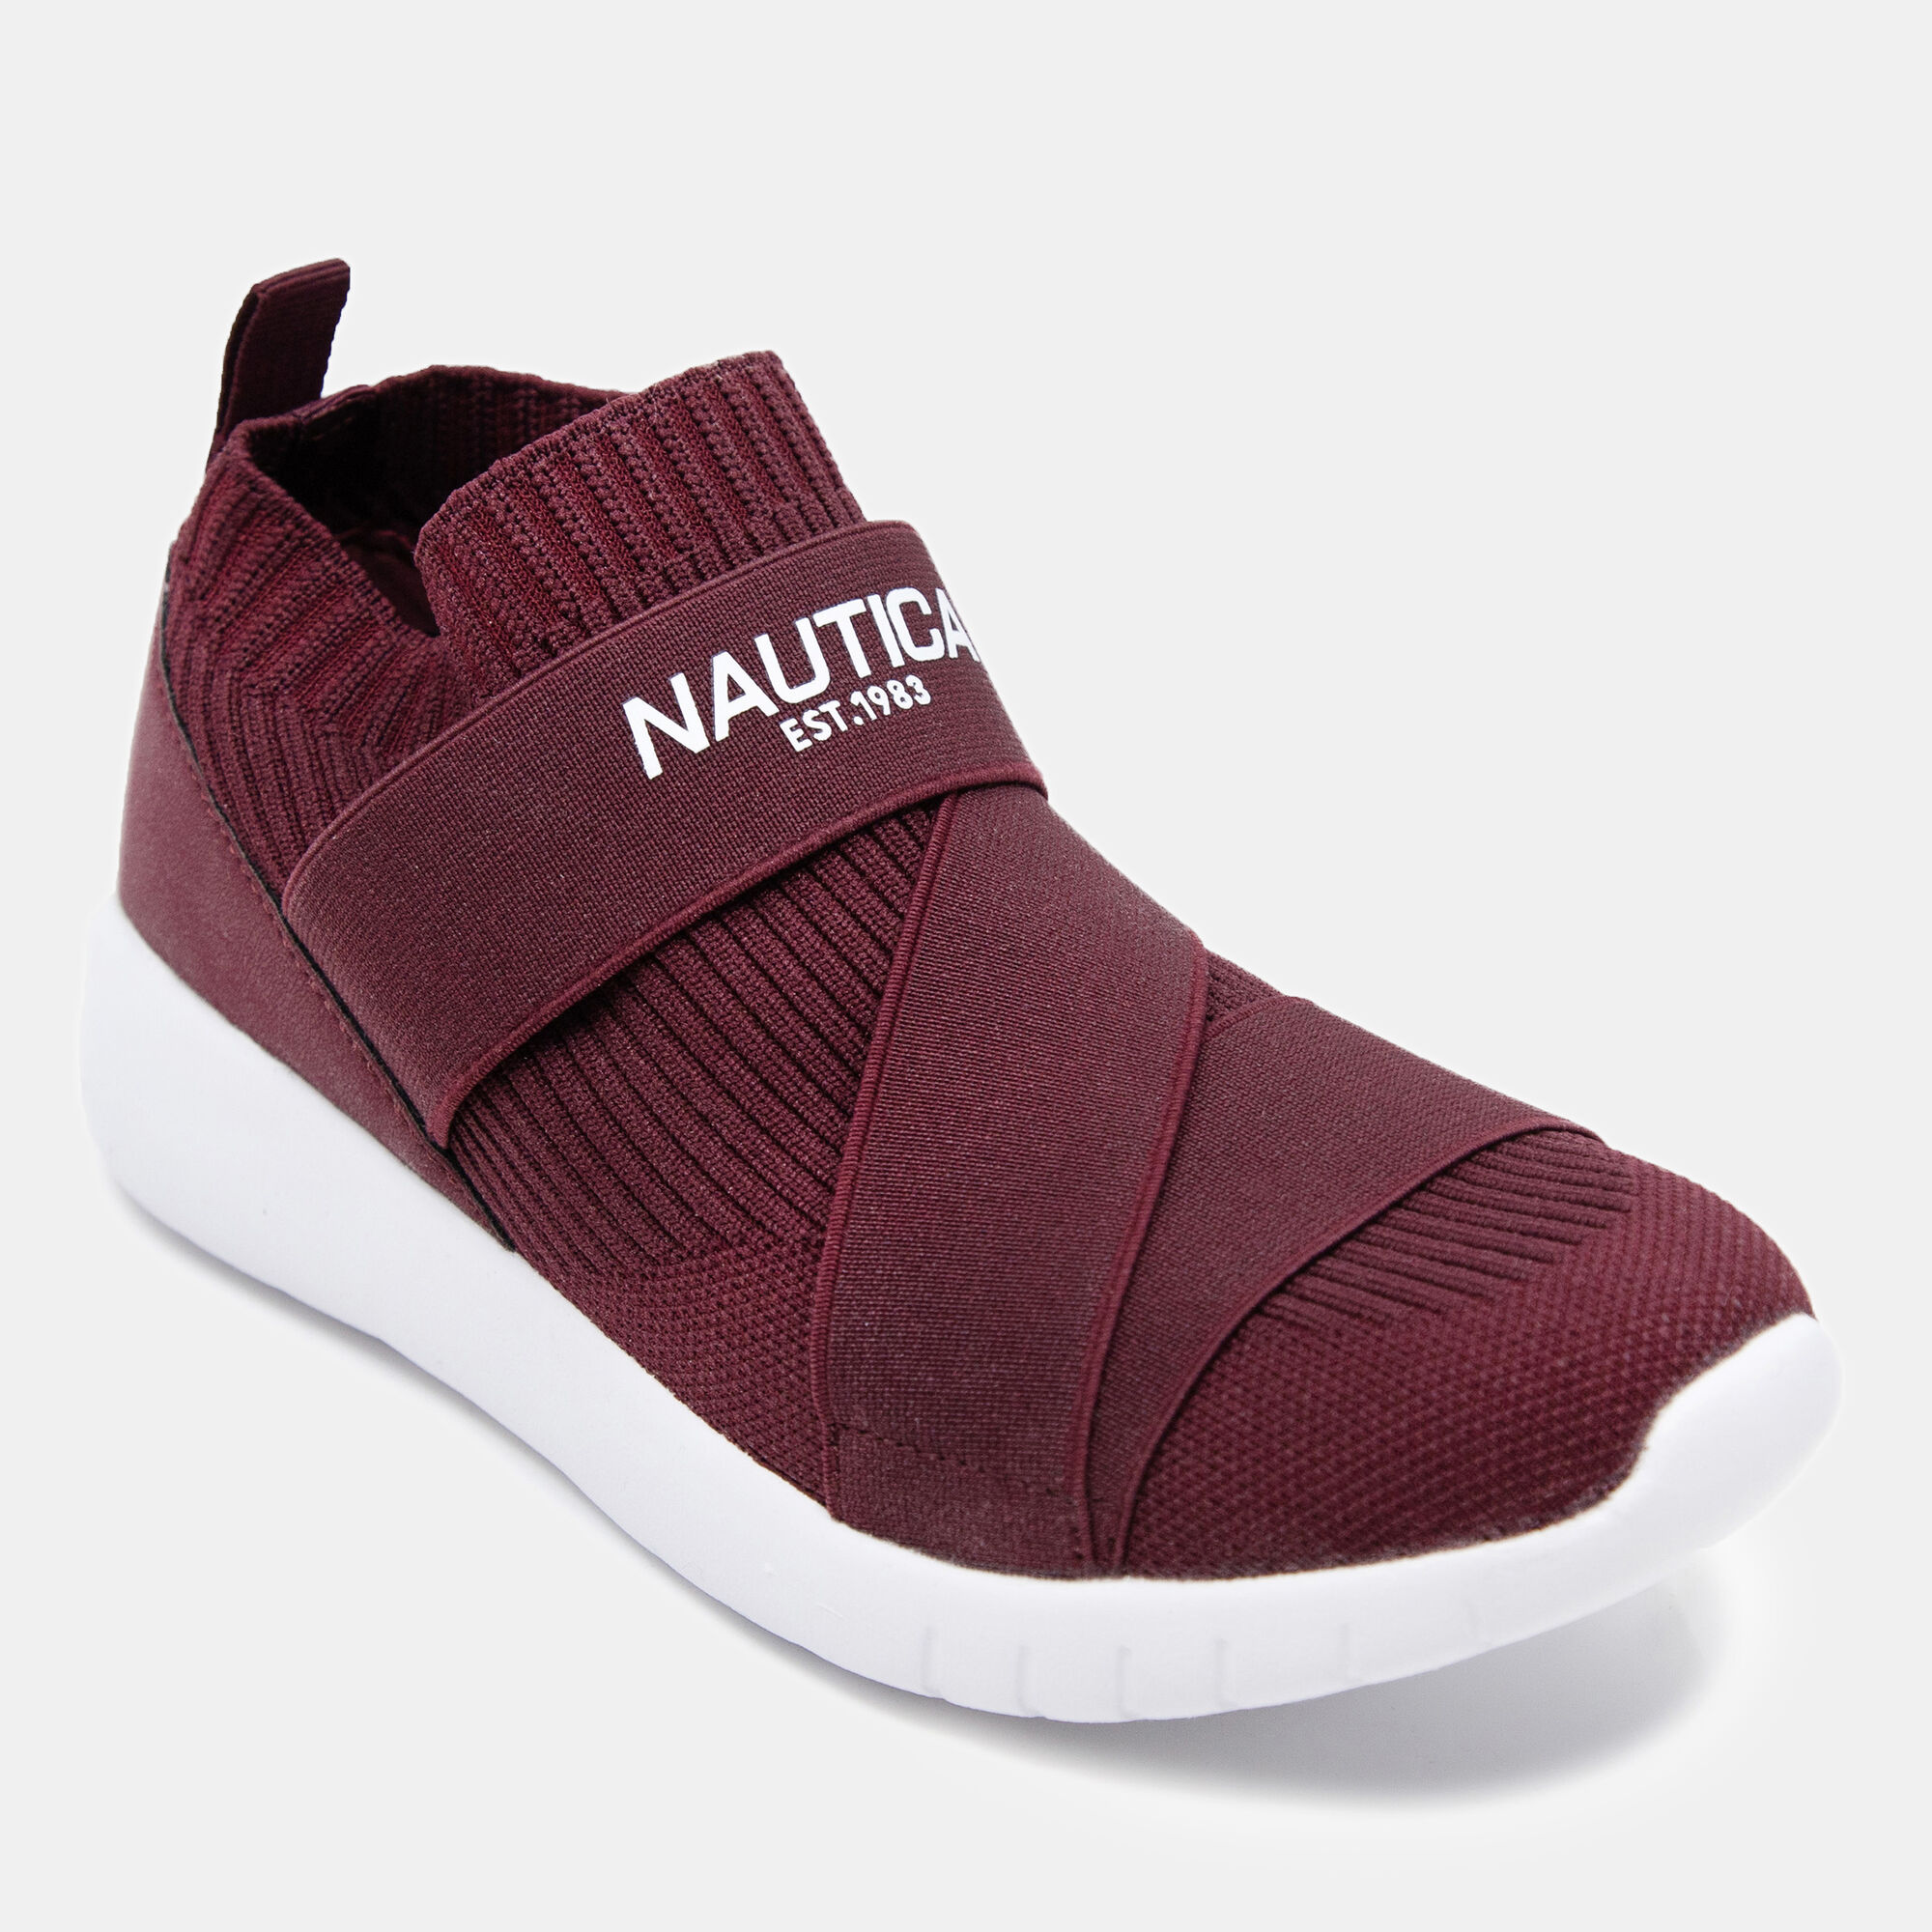 Nautica: Save up to 80% on Footwear and Apparel